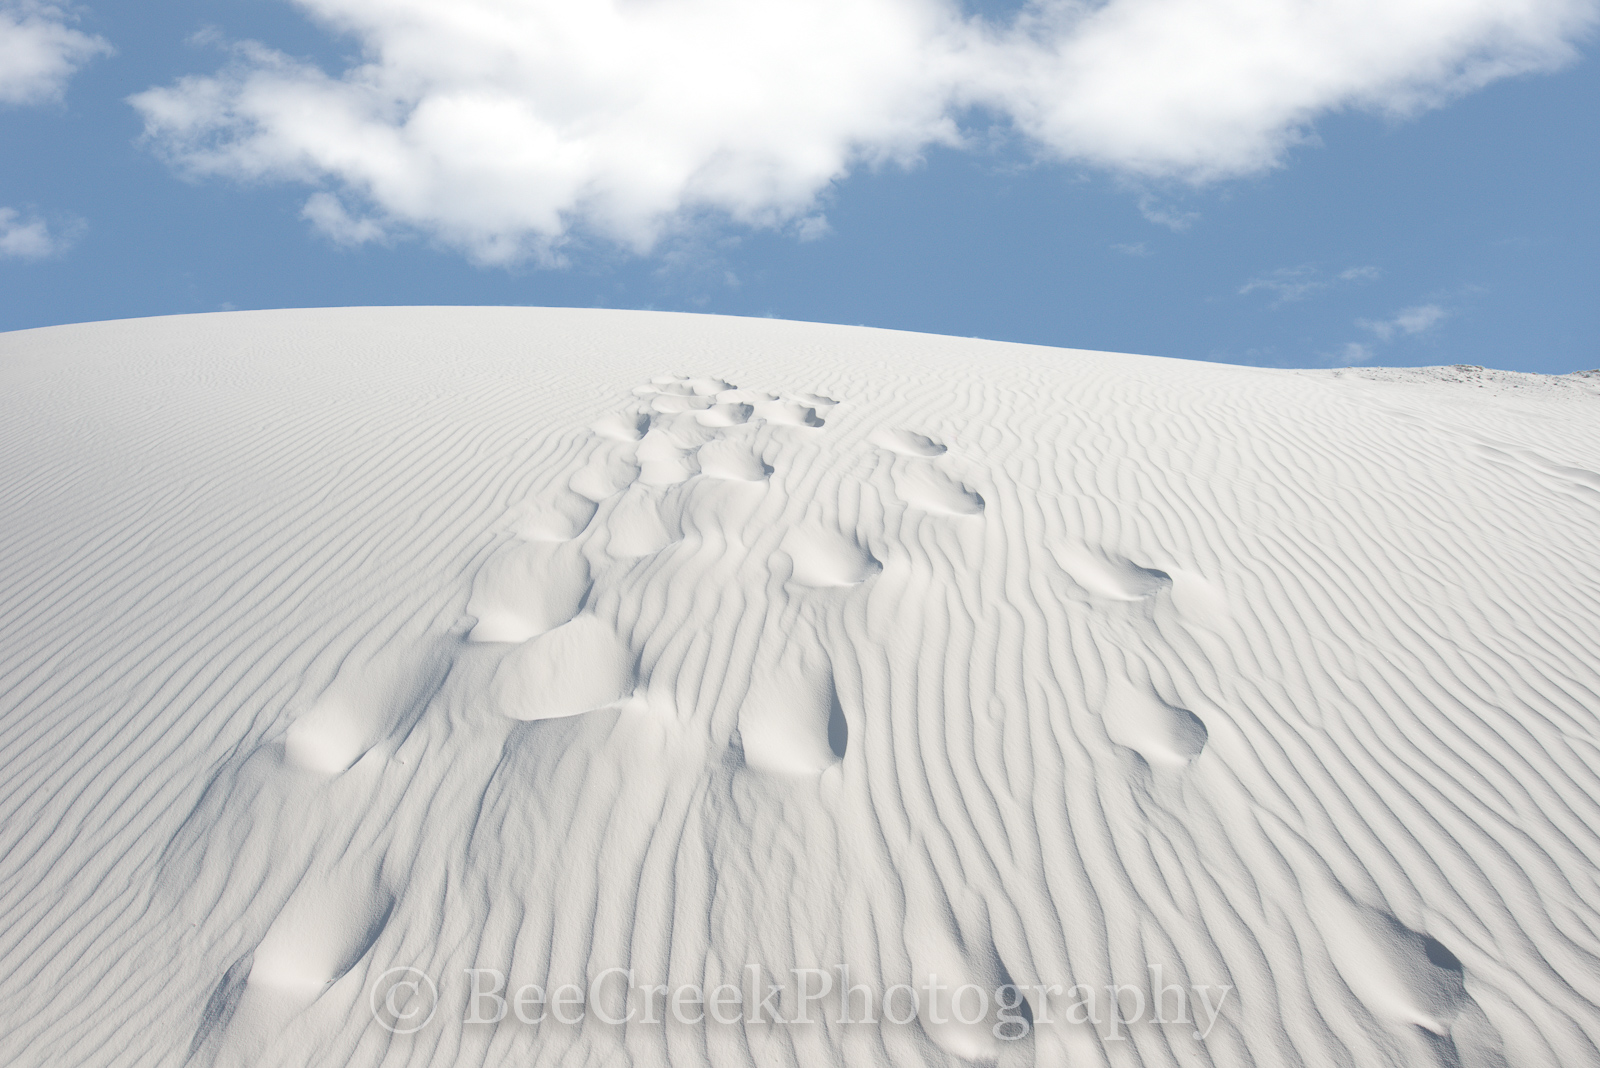 White Sands, Alamagorda nm, New Mexico, New Mexico Parks, White Sand National Monument, beautiful photos of white sands, dunes, flow of sand, foot steps in the sands, gypsum, images of White Sands, ma